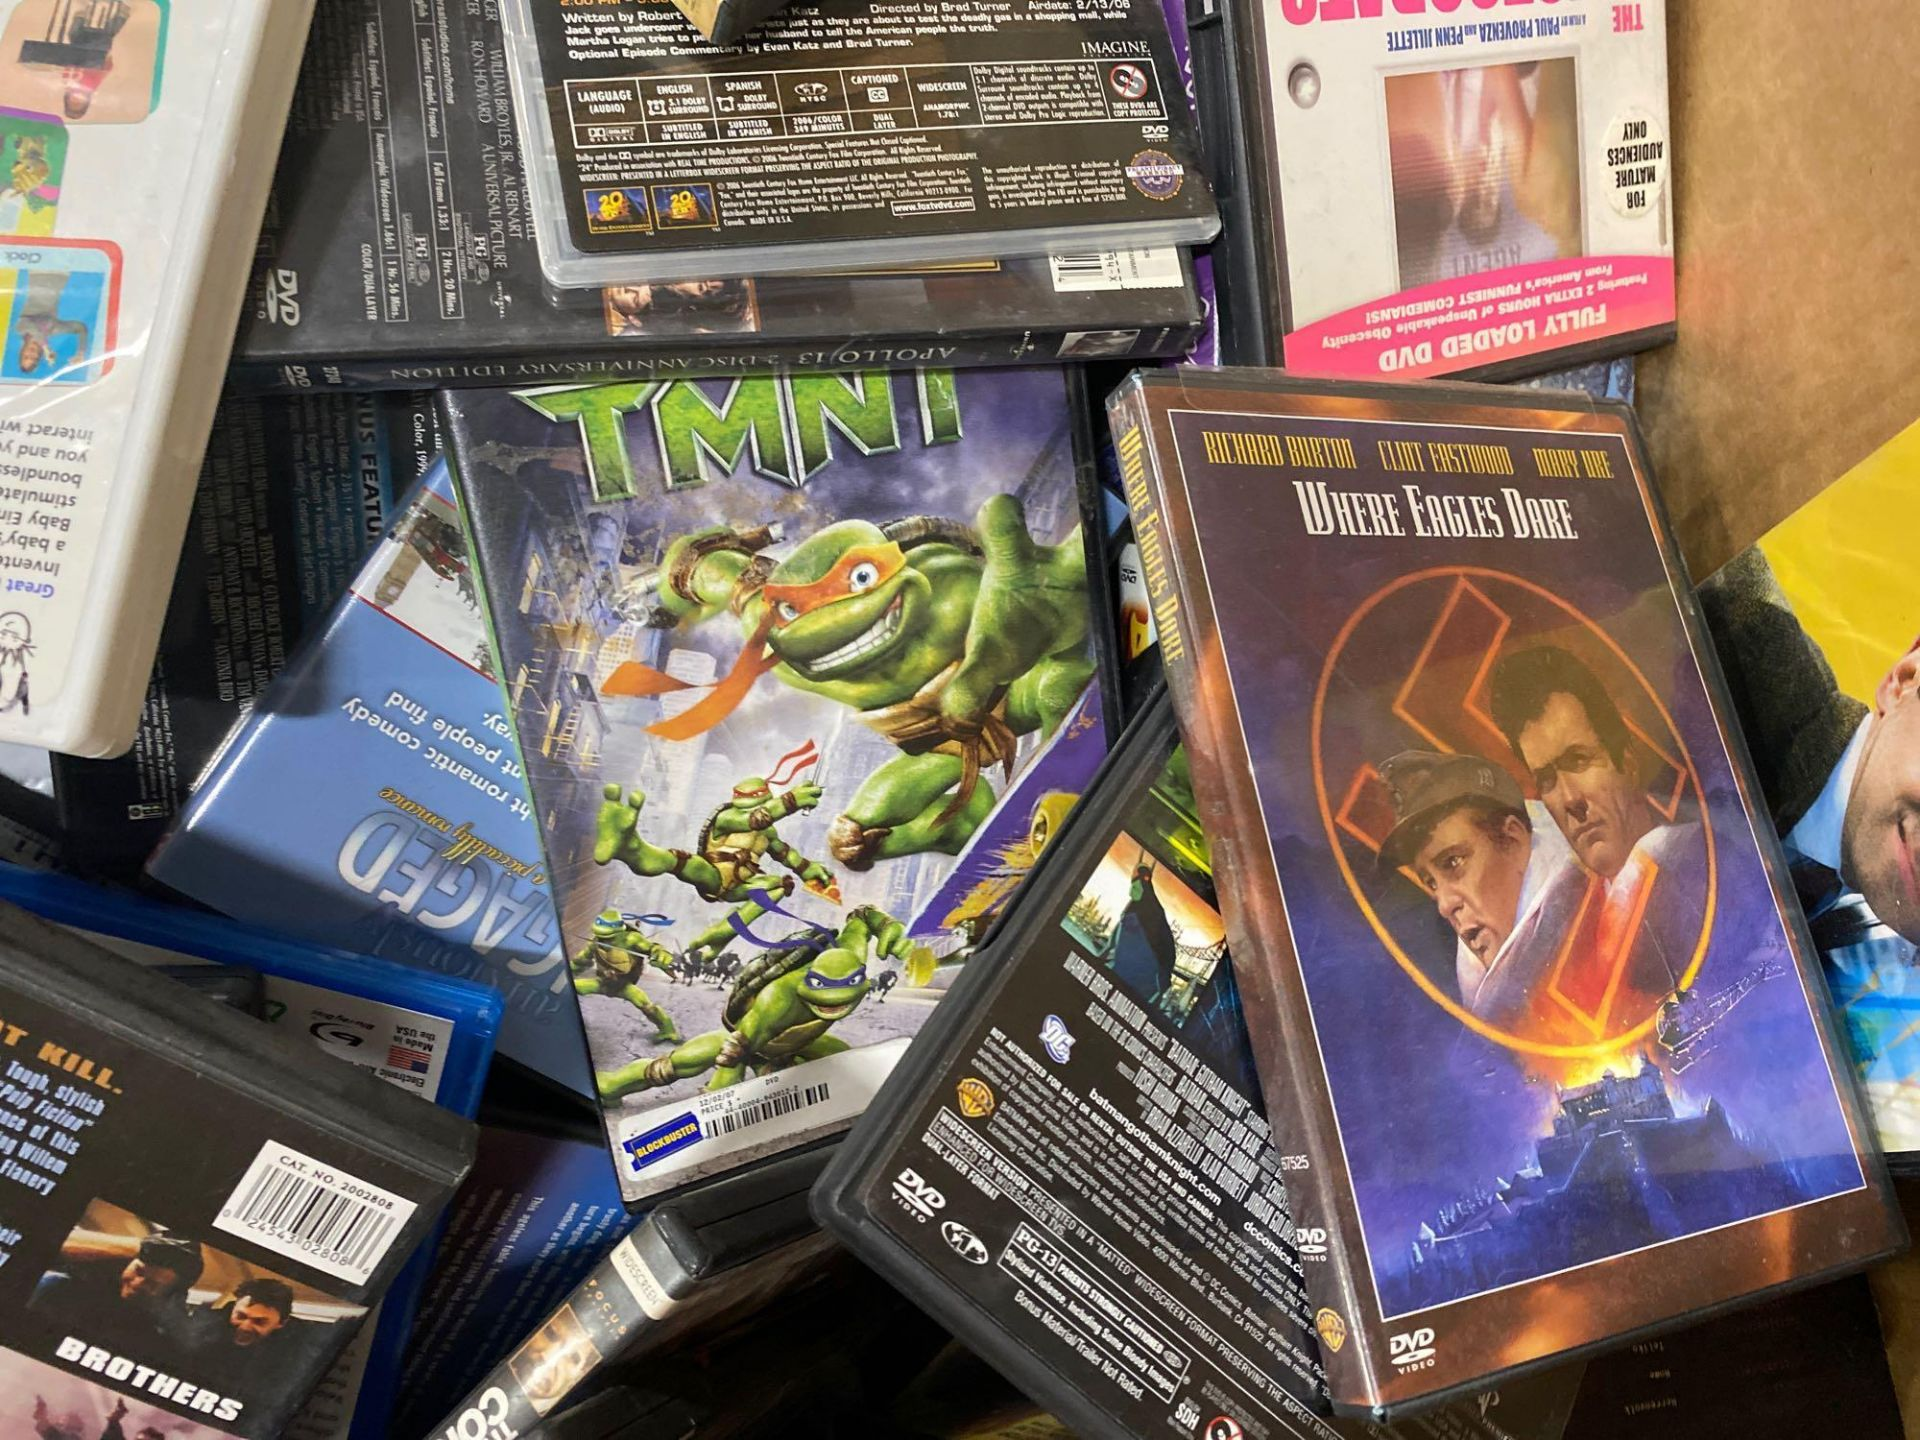 DVDs - Image 7 of 7